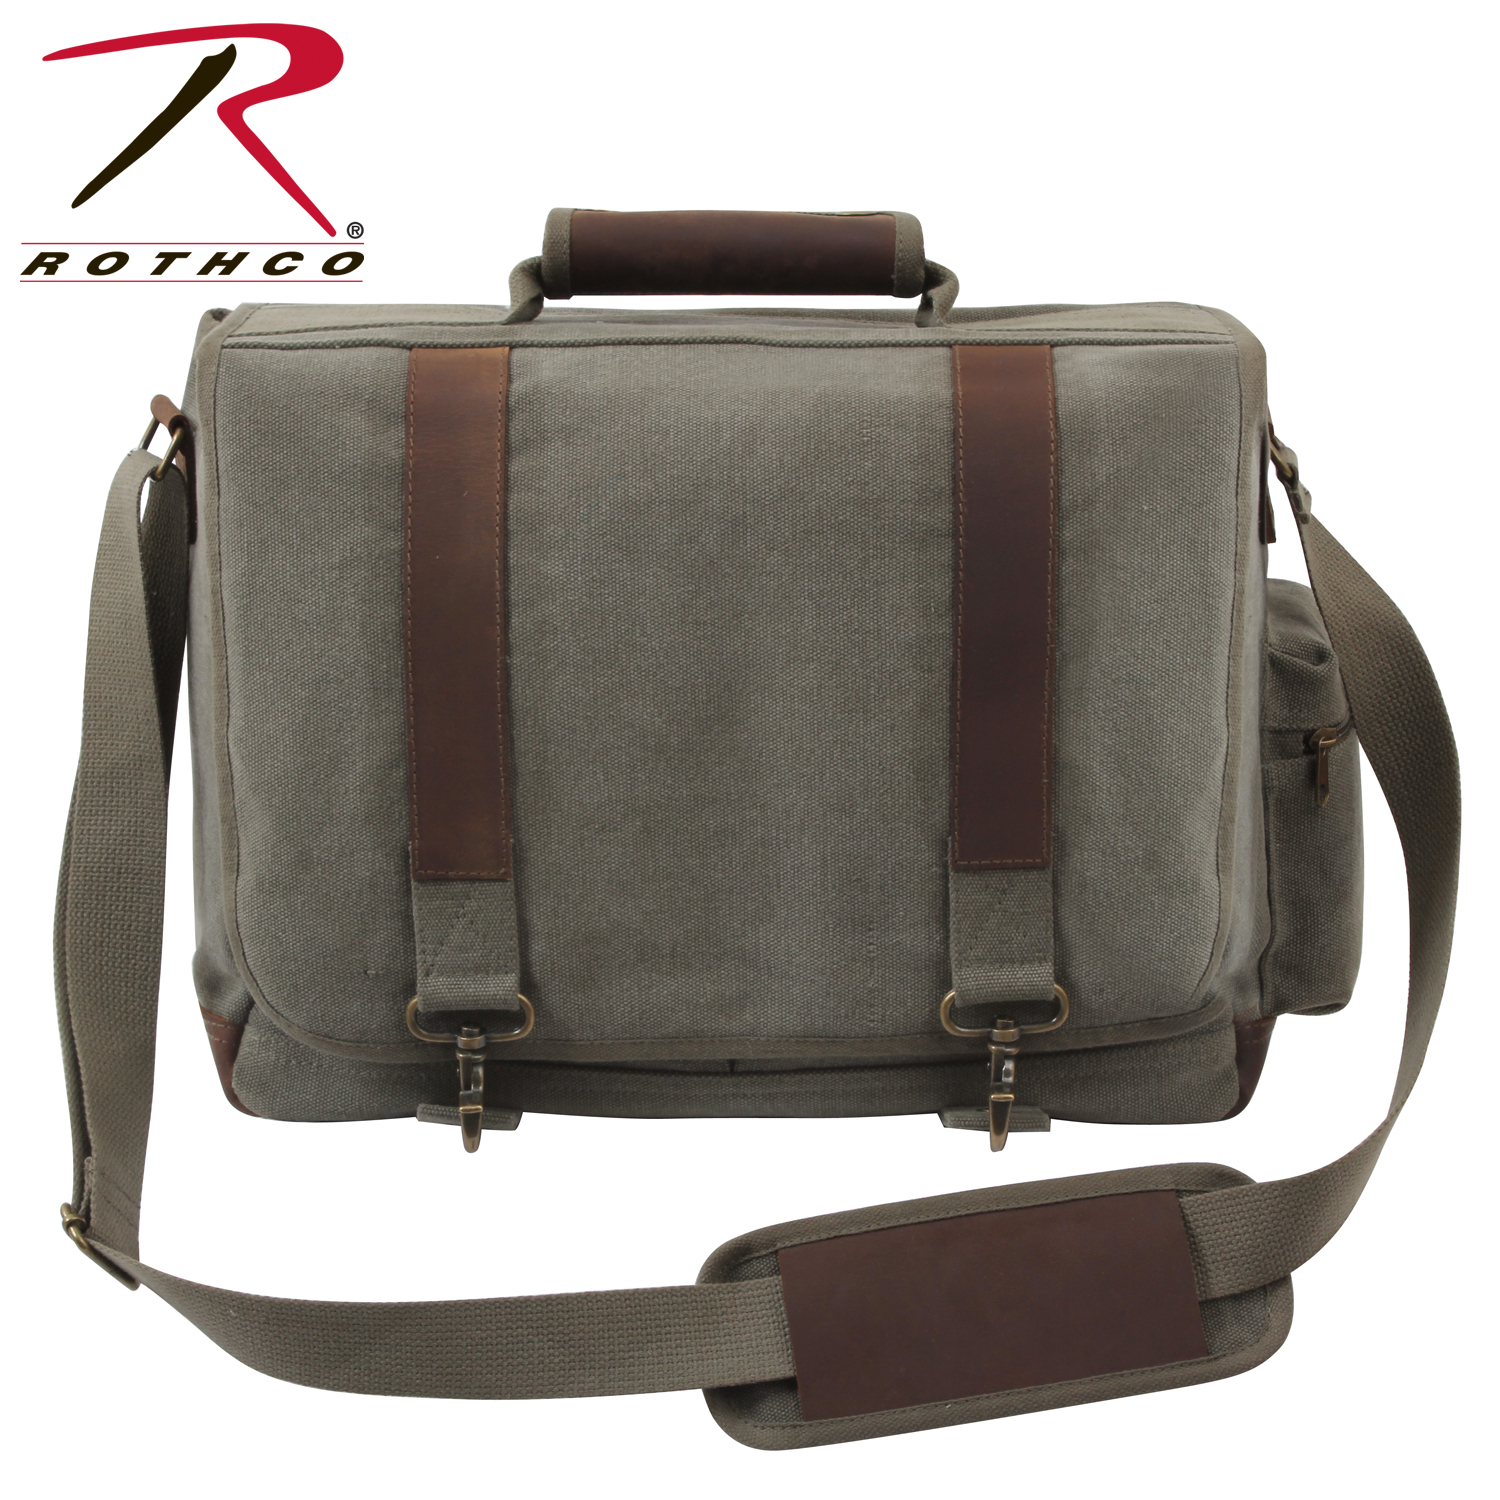 1cfbd40c600a Rothco Vintage Canvas Pathfinder Laptop Bag With Leather Accents